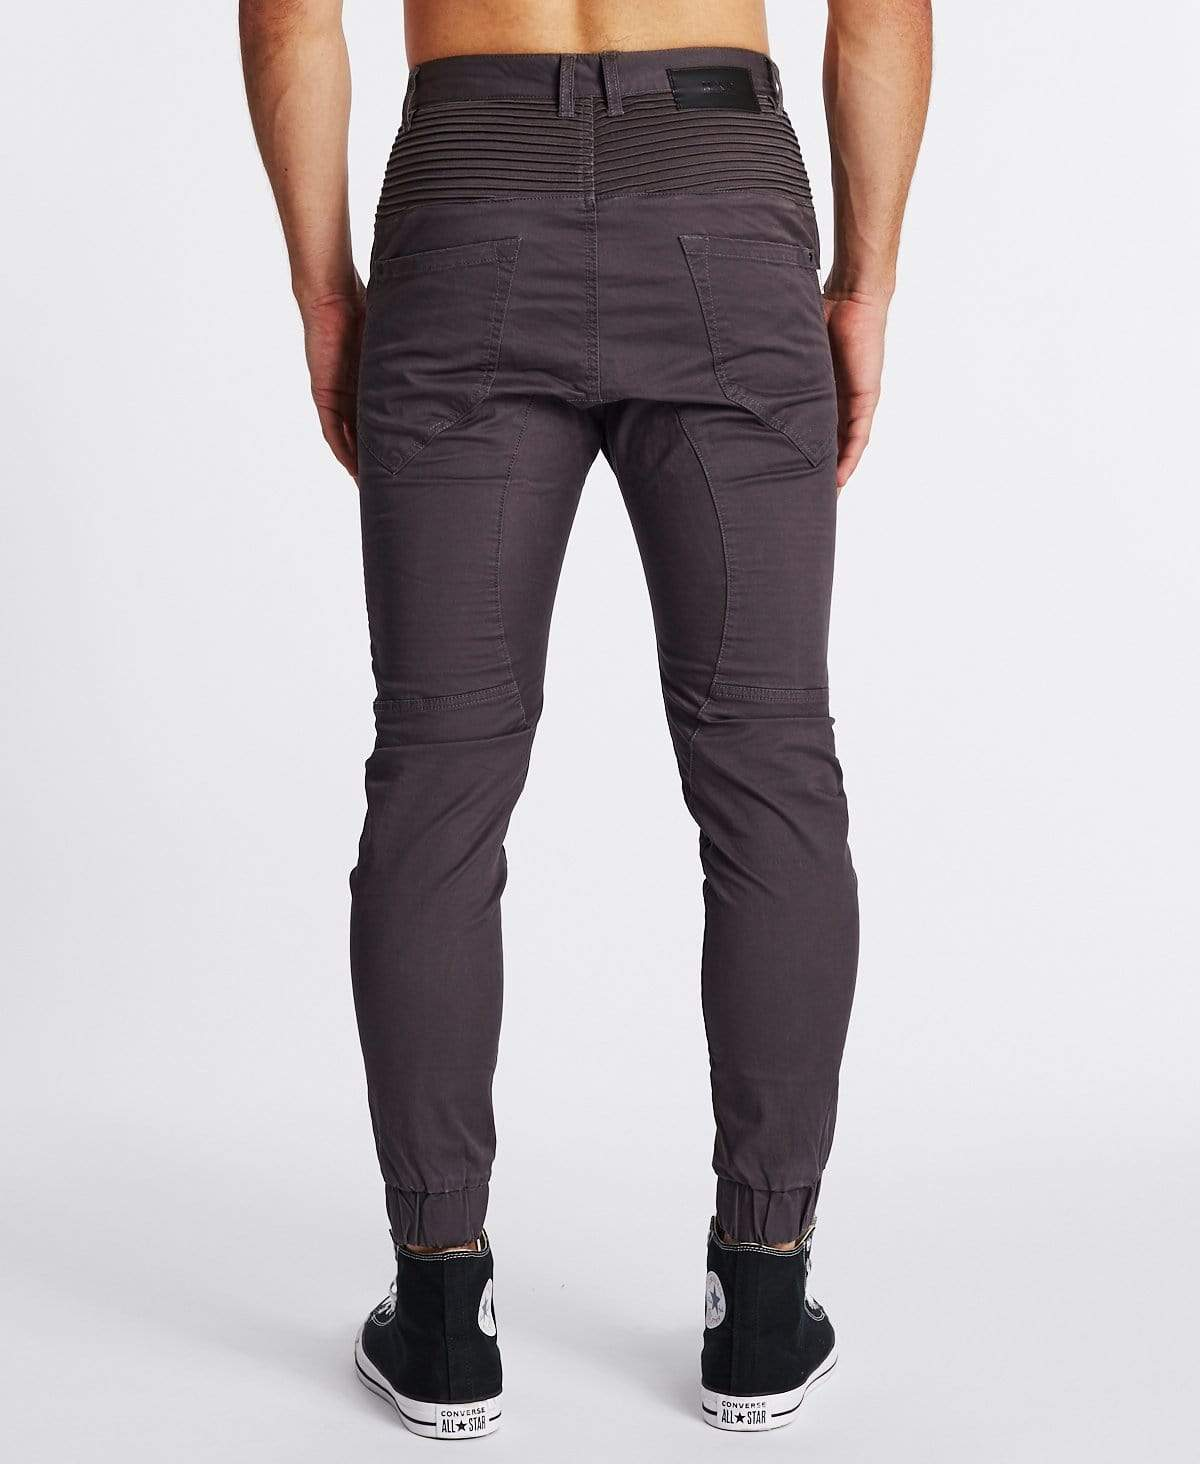 Nena & Pasadena Destroyer Pants Charcoal